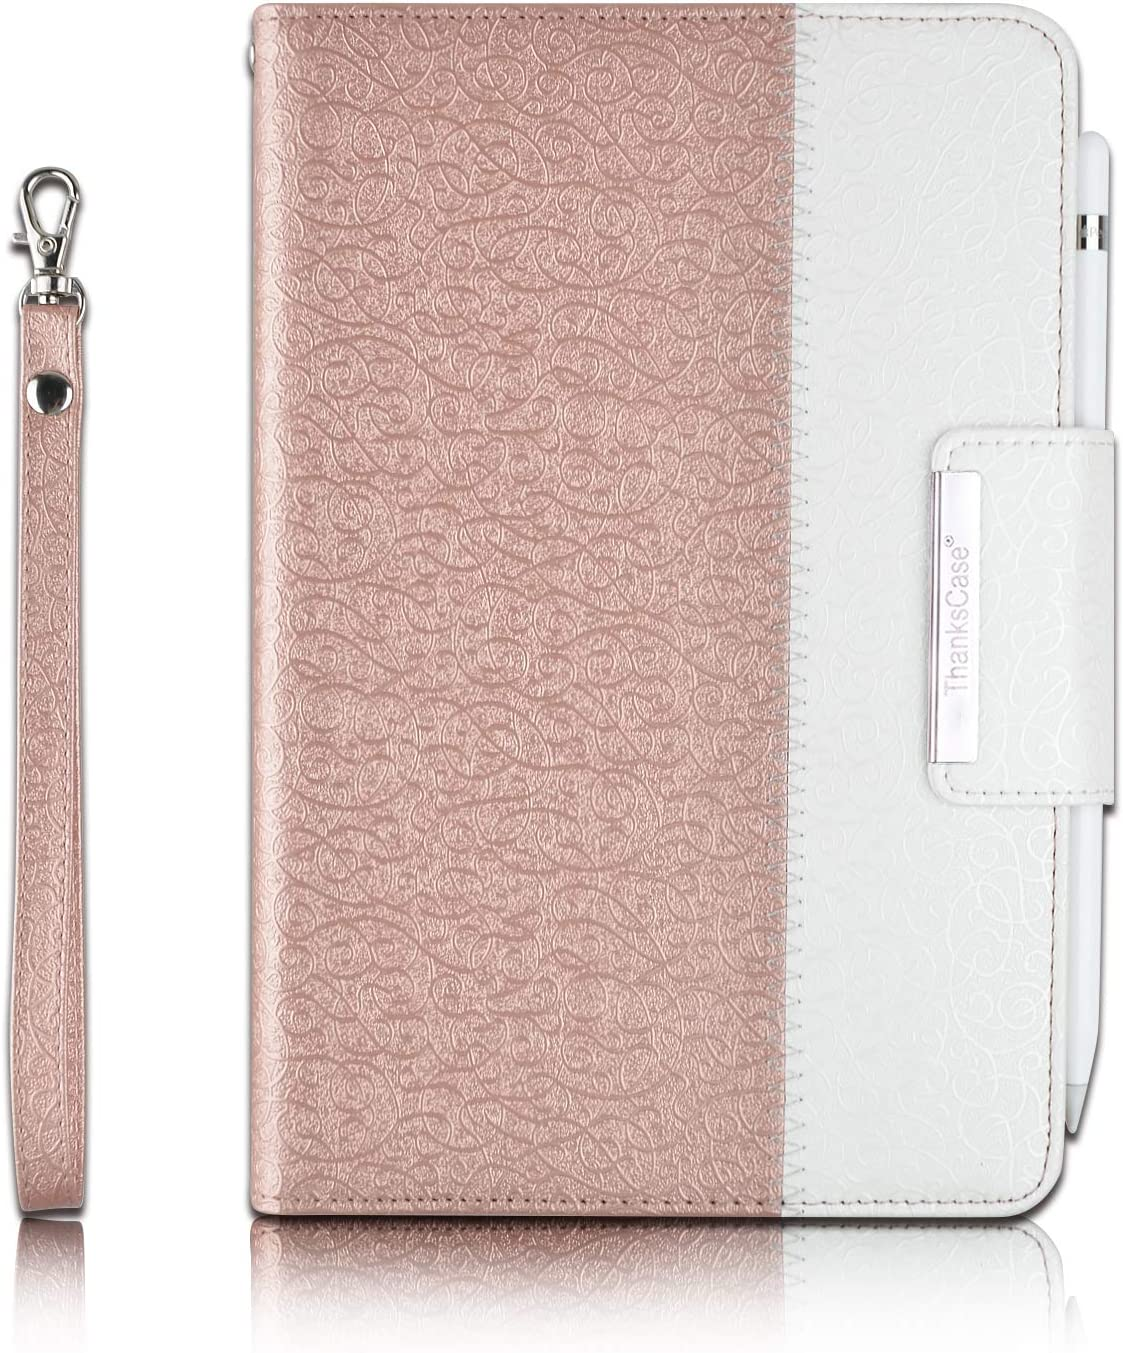 "Thankscase Case for iPad Mini 5 7.9"" 2019 / iPad Mini 4 2015, Rotating Case Leather Cover with Apple Pencil Holder, Swivel Case Build in Hand Strap, Wallet Pocket for iPad Mini 5th Gen (Rose Gold)"